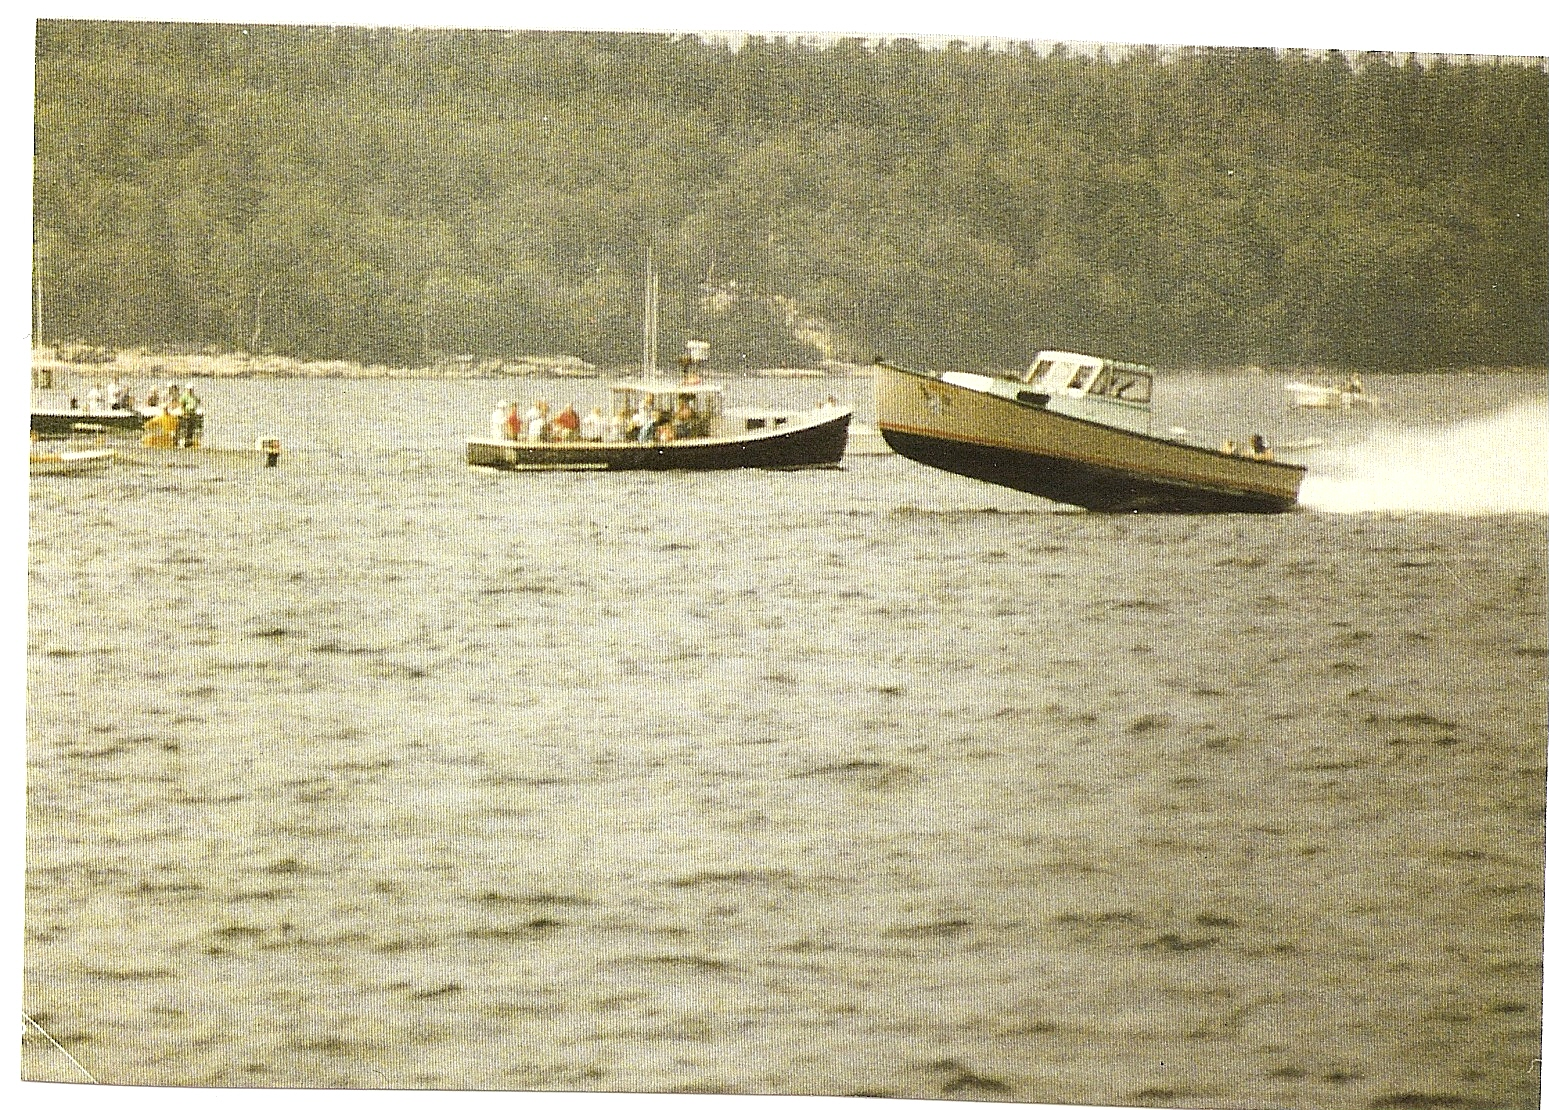 history of maine lobster boat racing